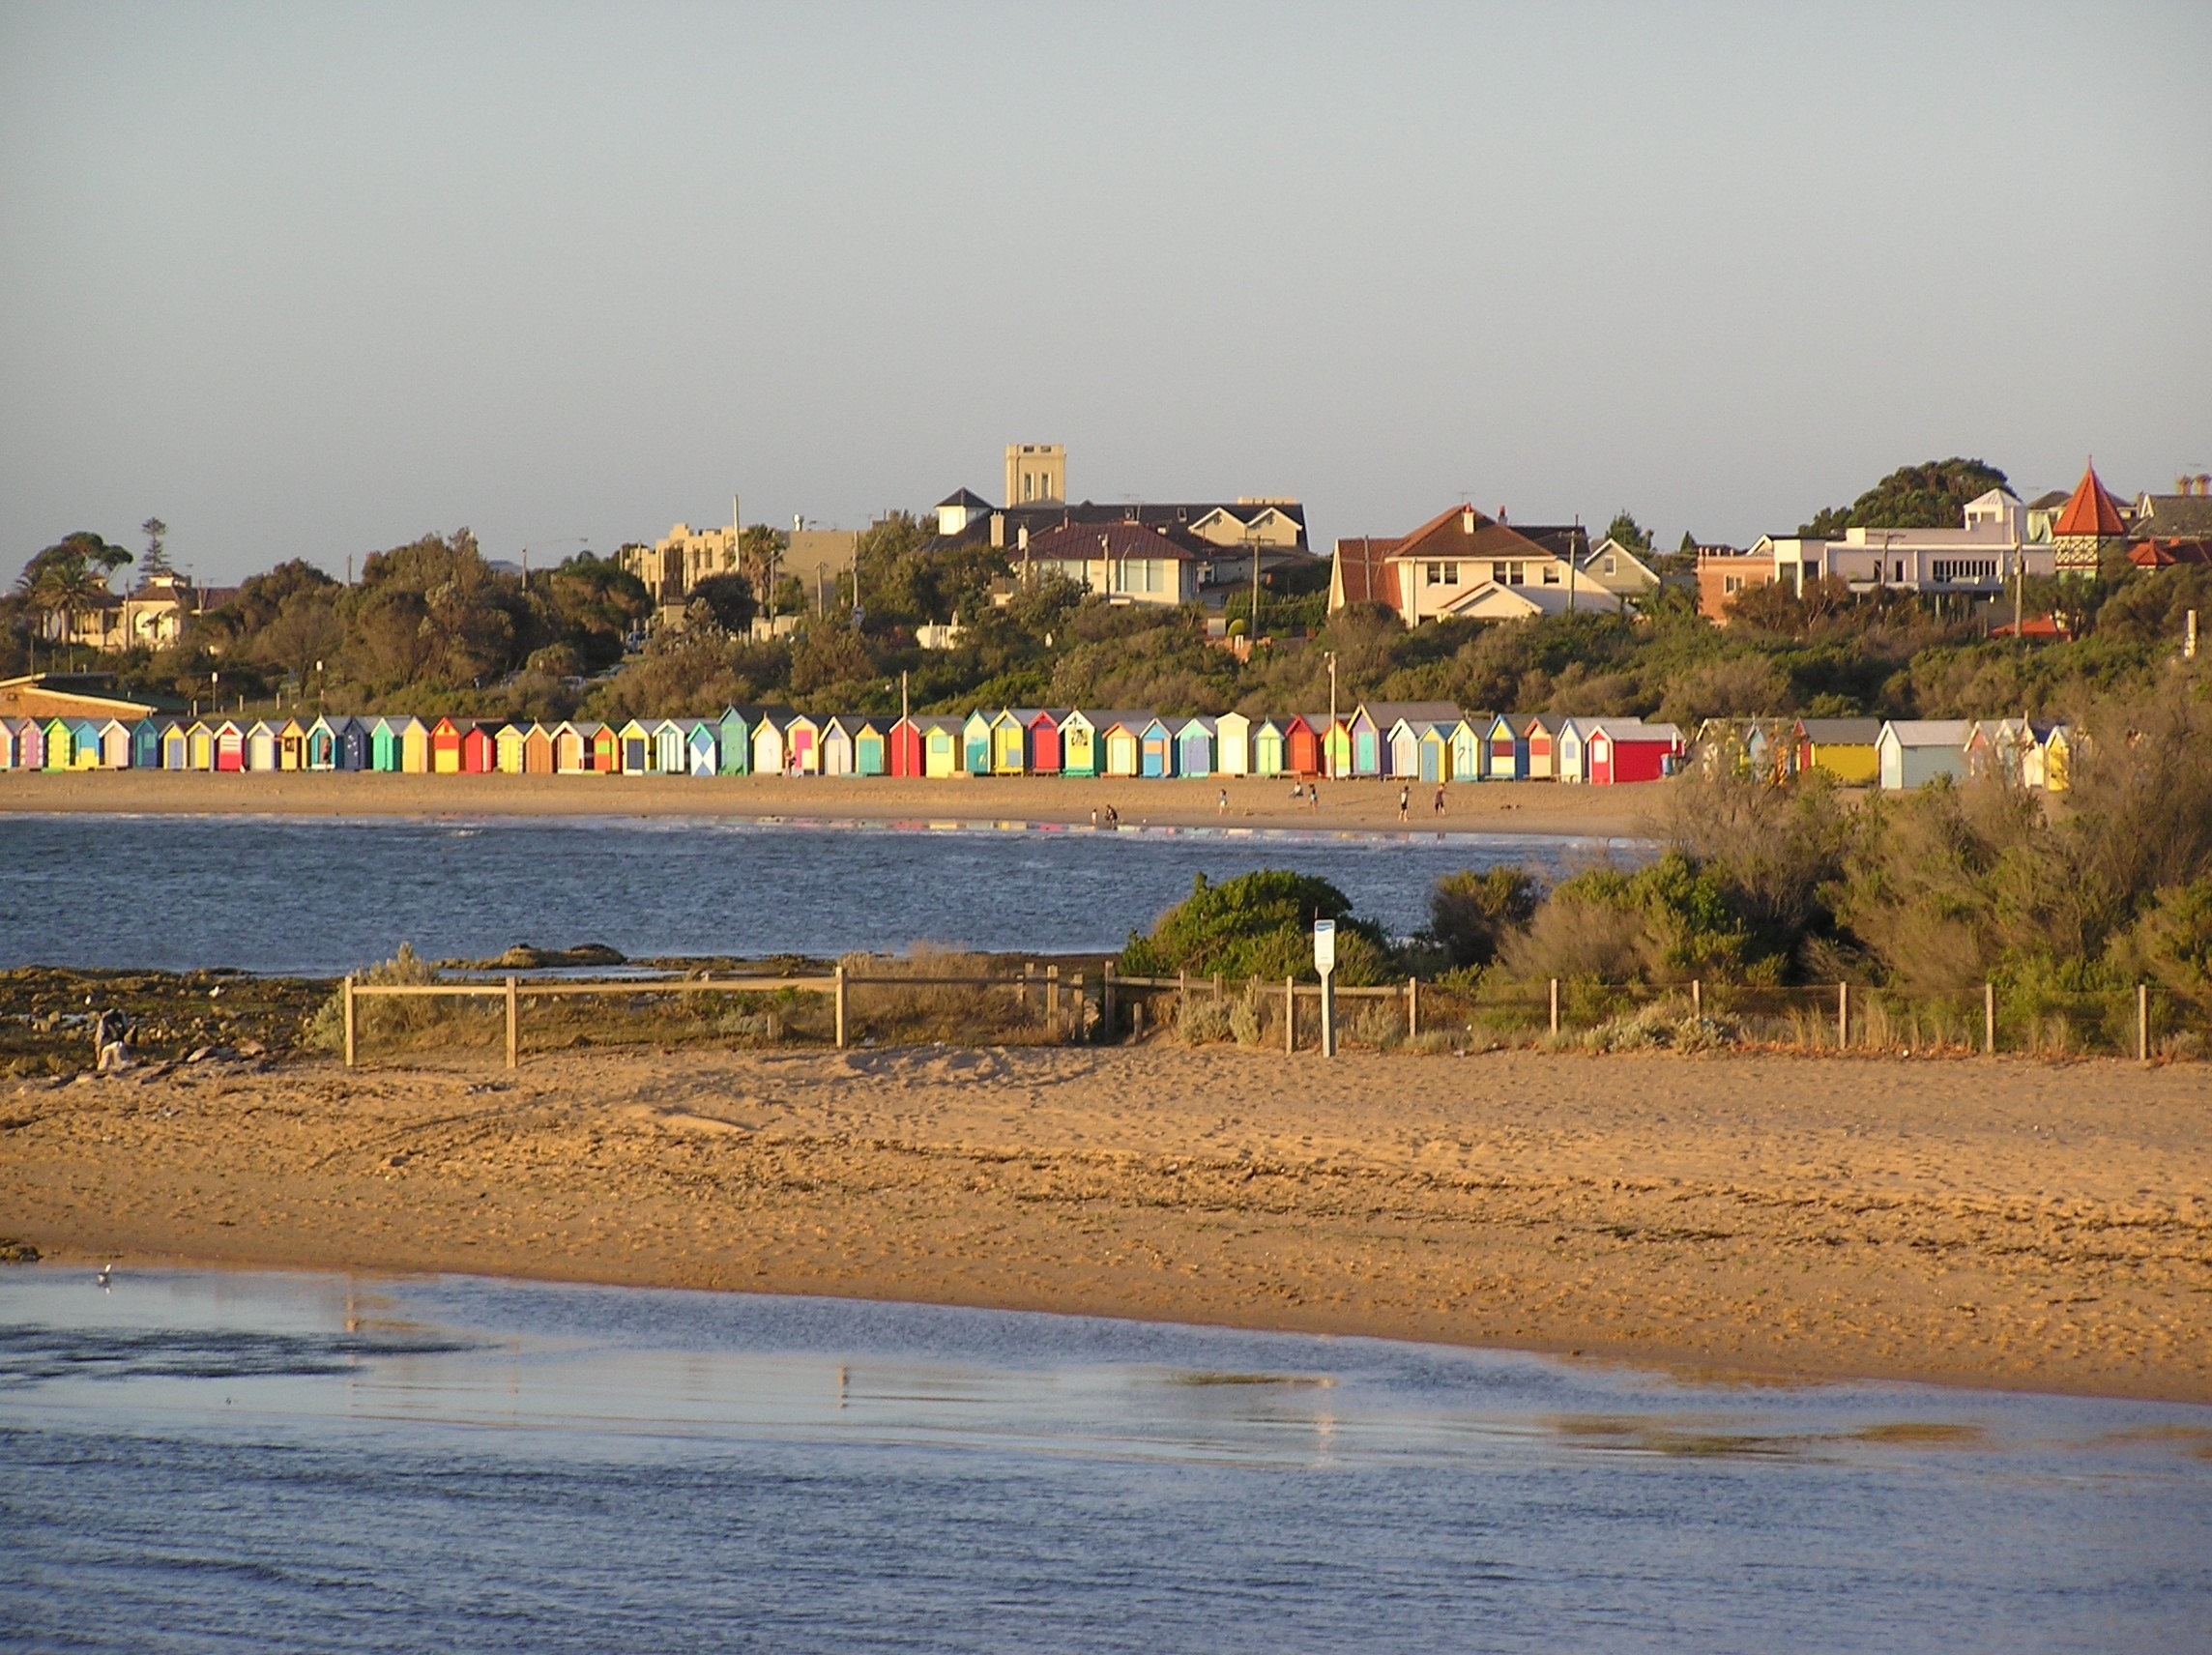 Boat_Houses_at_Brighton_Beach.jpg